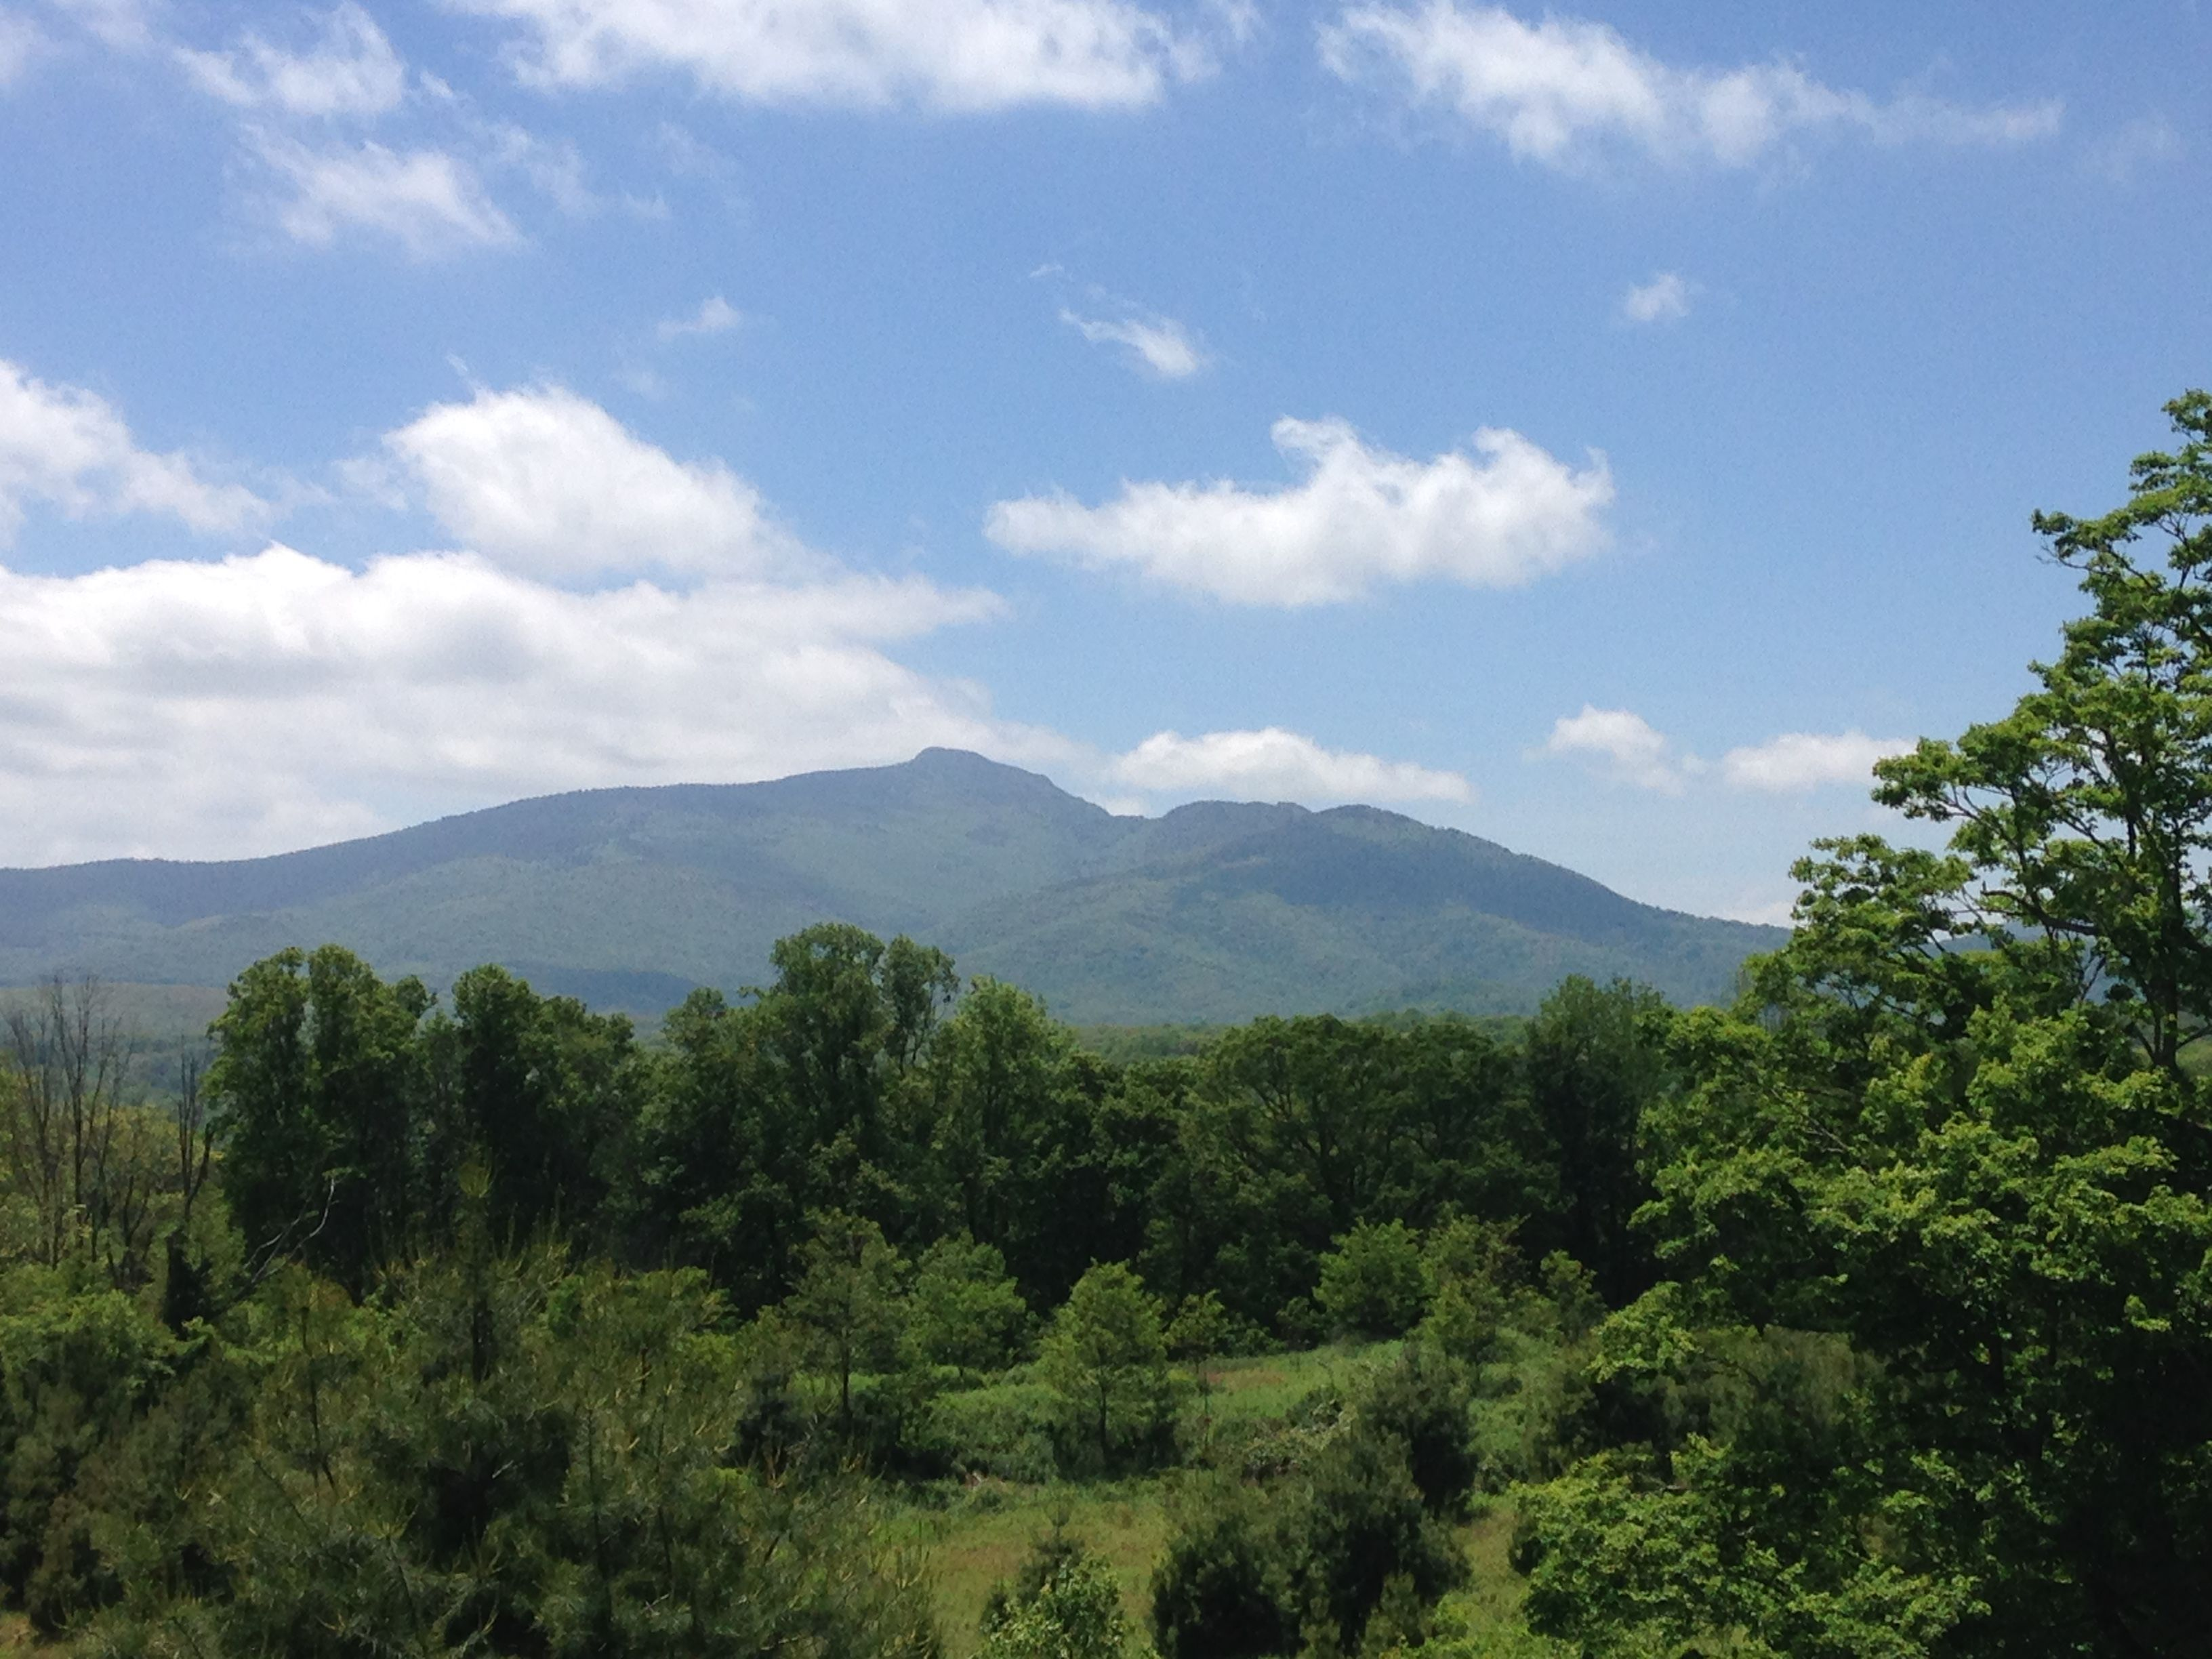 View of Grandfather Mountain from Green Knob Trail in Boone, NC. #hiking #greenknob #grandfathermountain